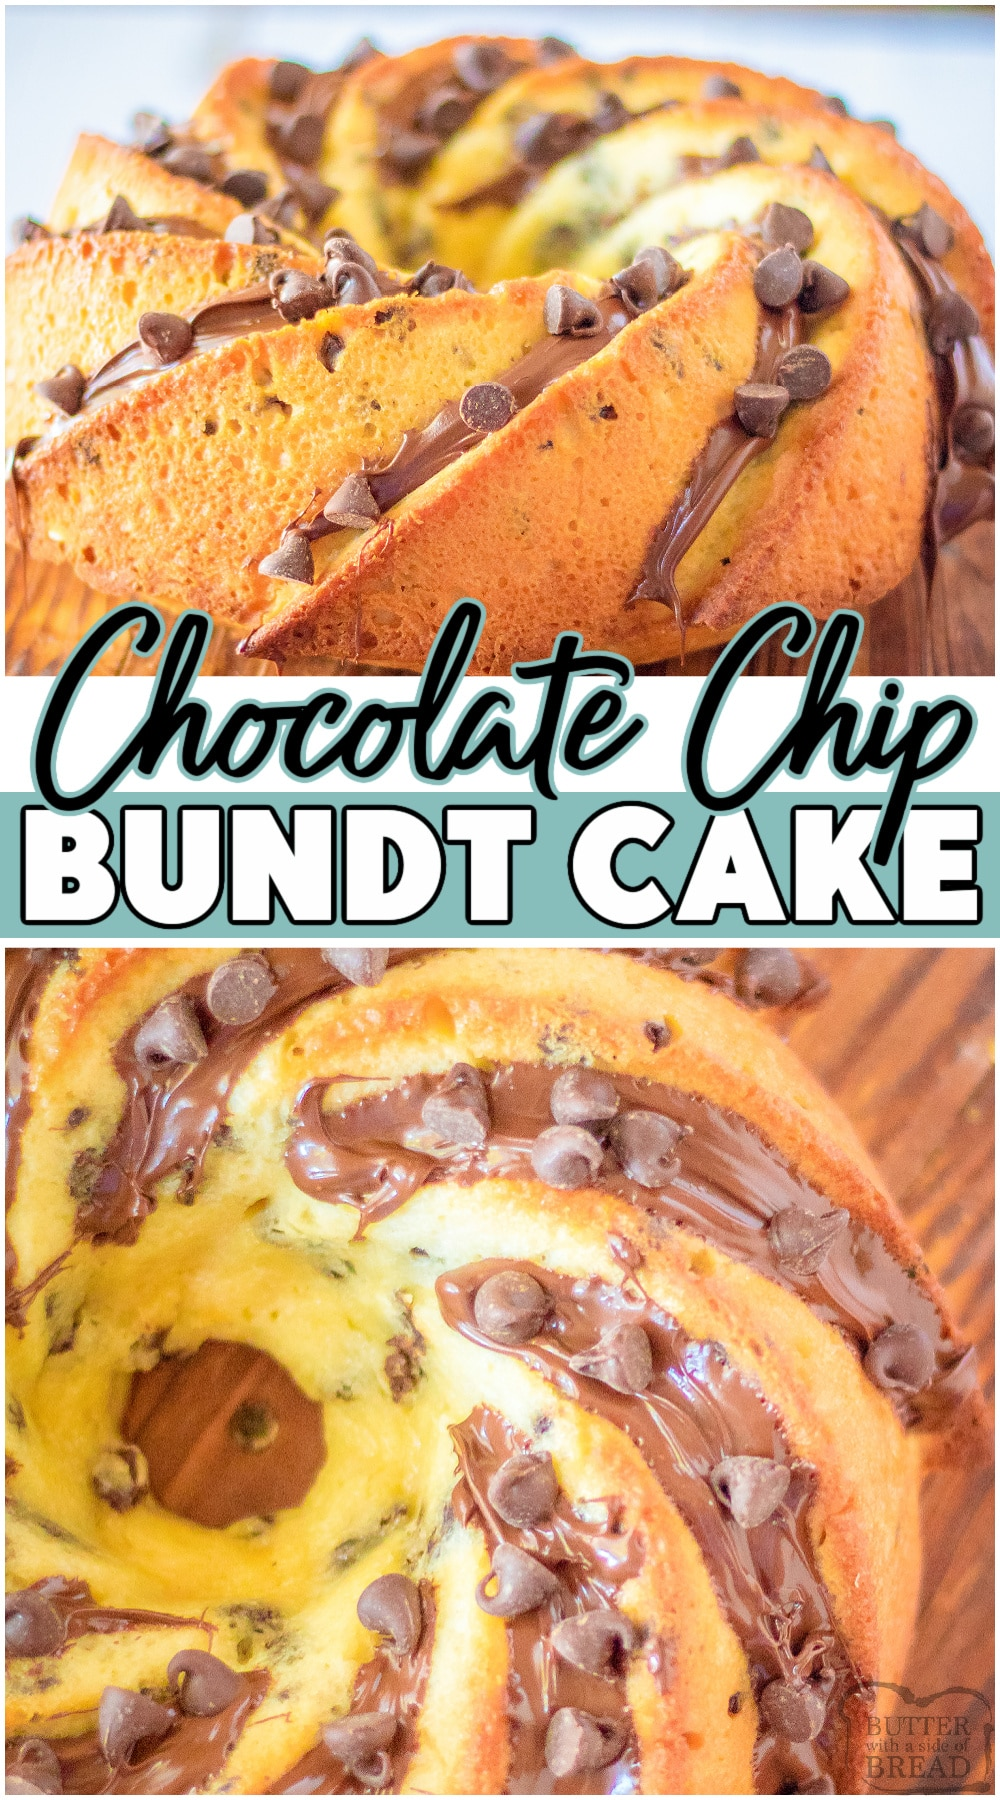 Fantastic Chocolate Chip Bundt Cake with a moist, tender crumb & incredible chocolate flavor! Homemade Bundt Cake recipe packed with chocolate chips inside and on top of the cake, perfect for anyone who loves chocolate. #bundt #cake #chocolate #chocolatechip #baking #easyrecipe #dessert from BUTTER WITH A SIDE OF BREAD